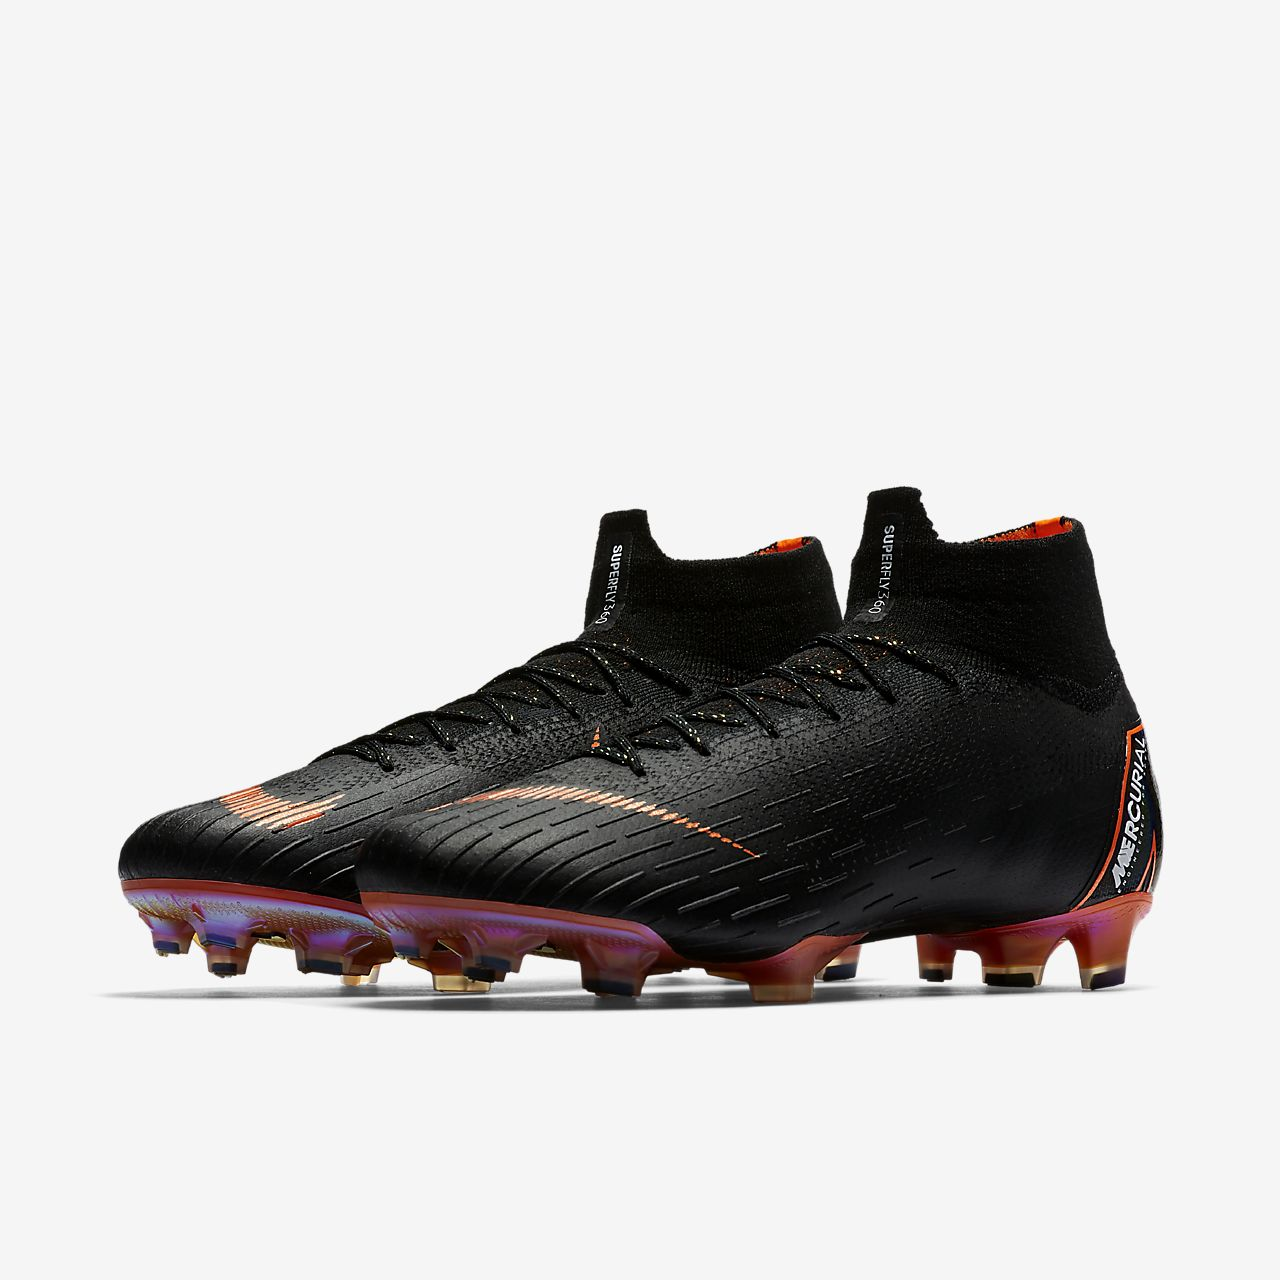 Nike Mercurial Vapor XII Academy MG, Chaussures de Football Homme, Noir (Black/Total Orange-W 081), 38.5 EU